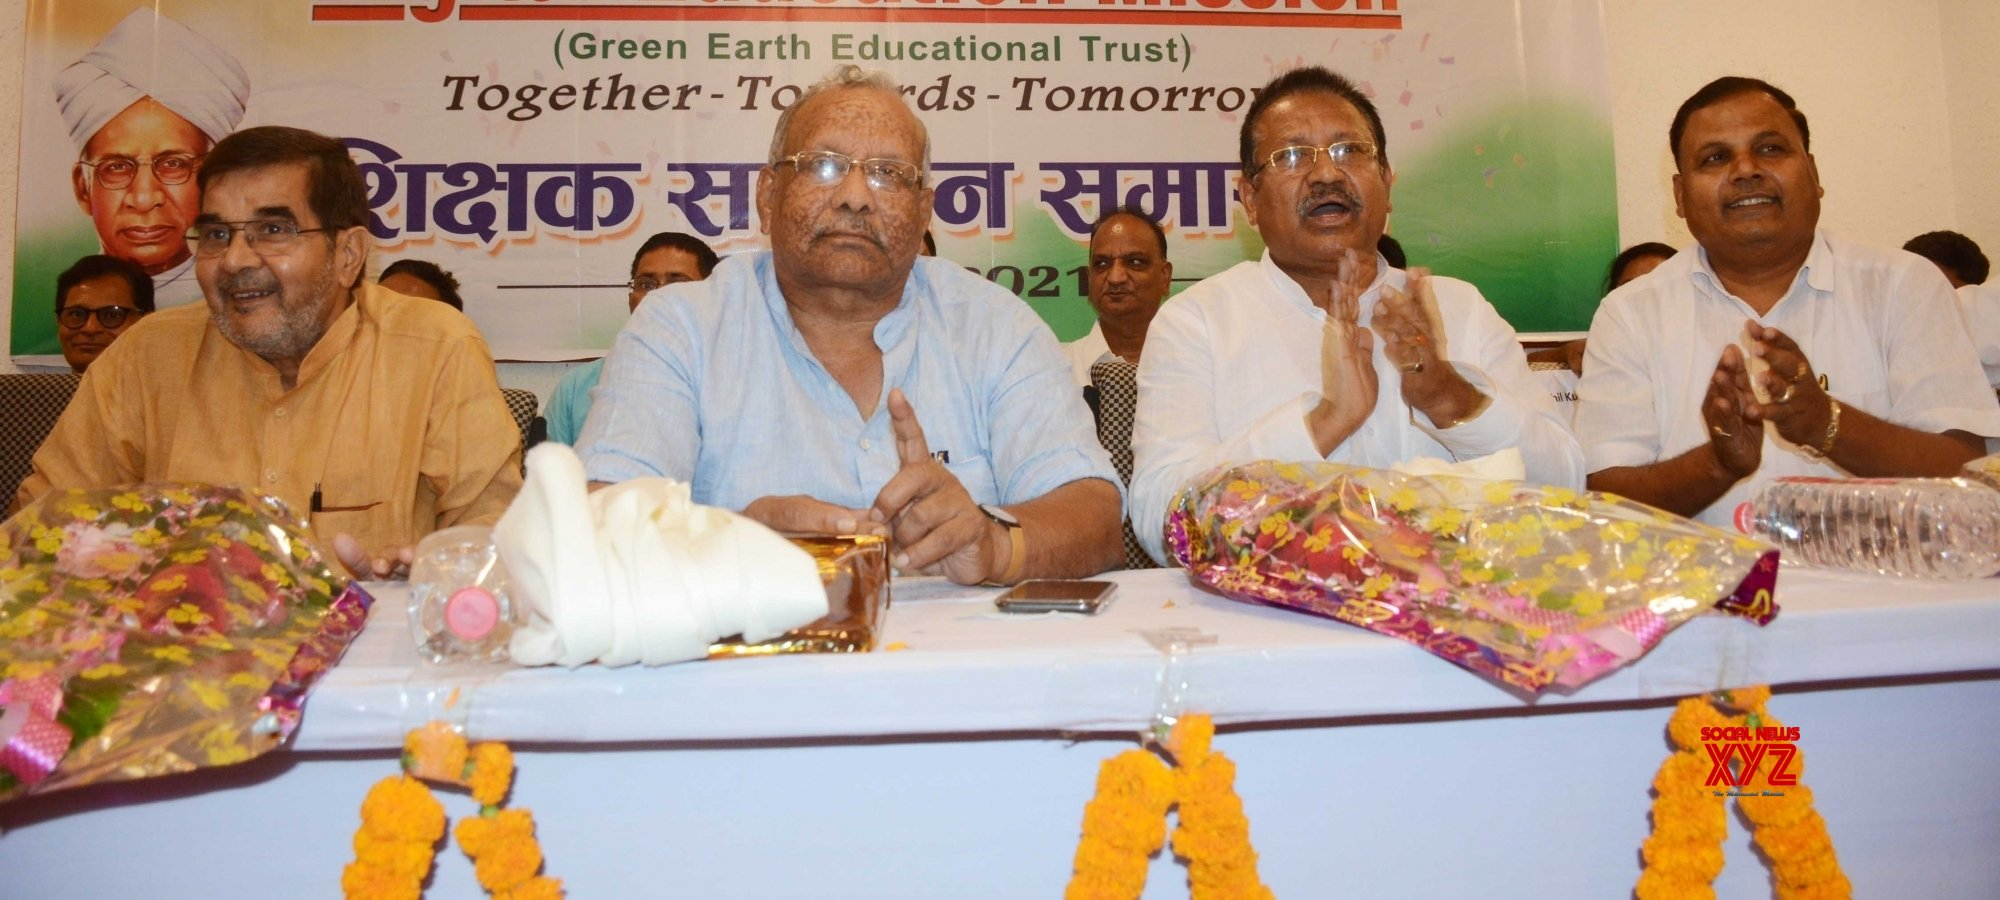 Patna: Bihar Deputy Chief Minister Tarkishore Prasad along with others during the teacher's honor ceremony at Vidyapati Bhavan in Patna. #Gallery